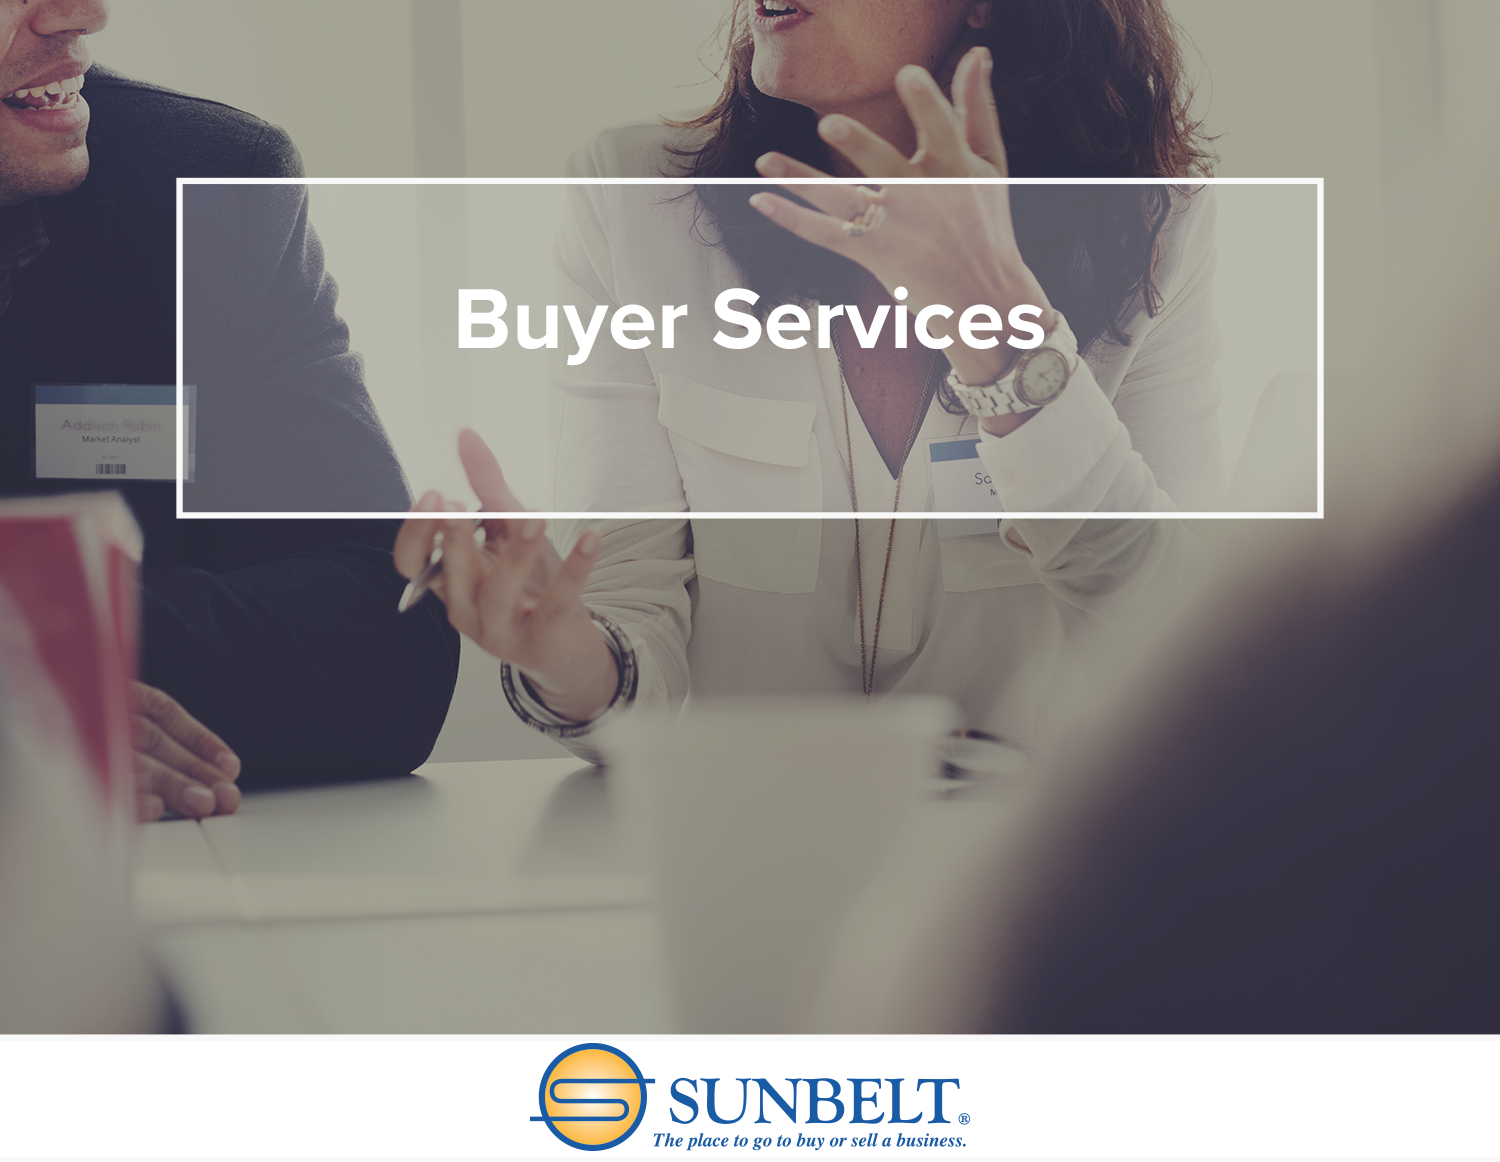 Sunbelt Business Brokers of South Florida - Boca Raton image 1